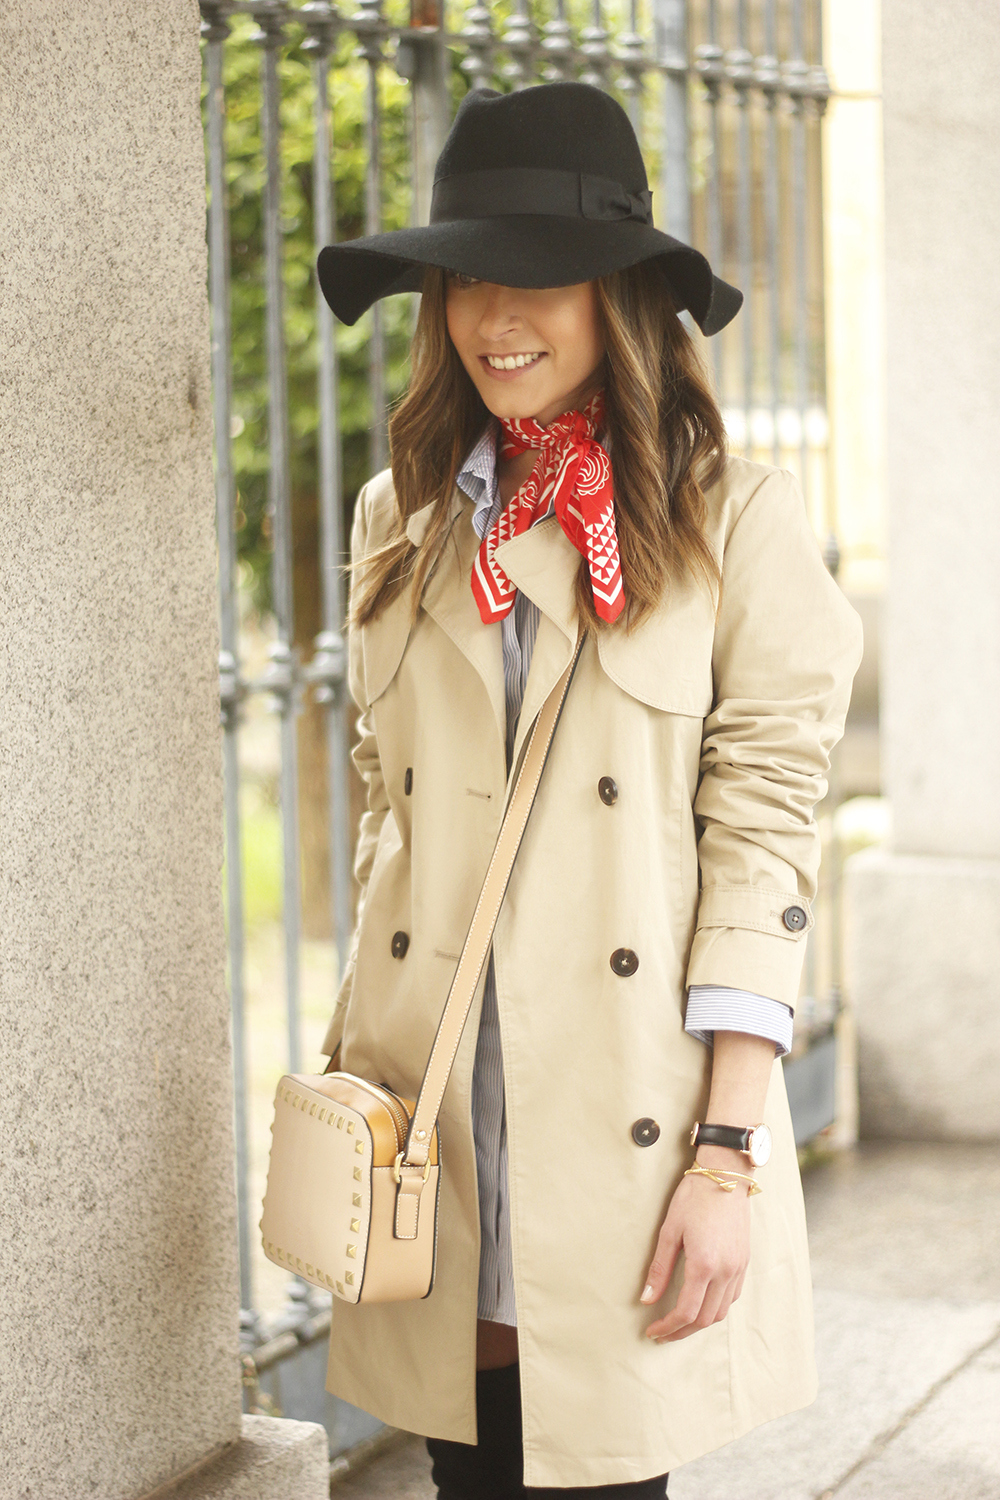 trench dress shirt over the knee boots red bandana hat pepe moll bag07